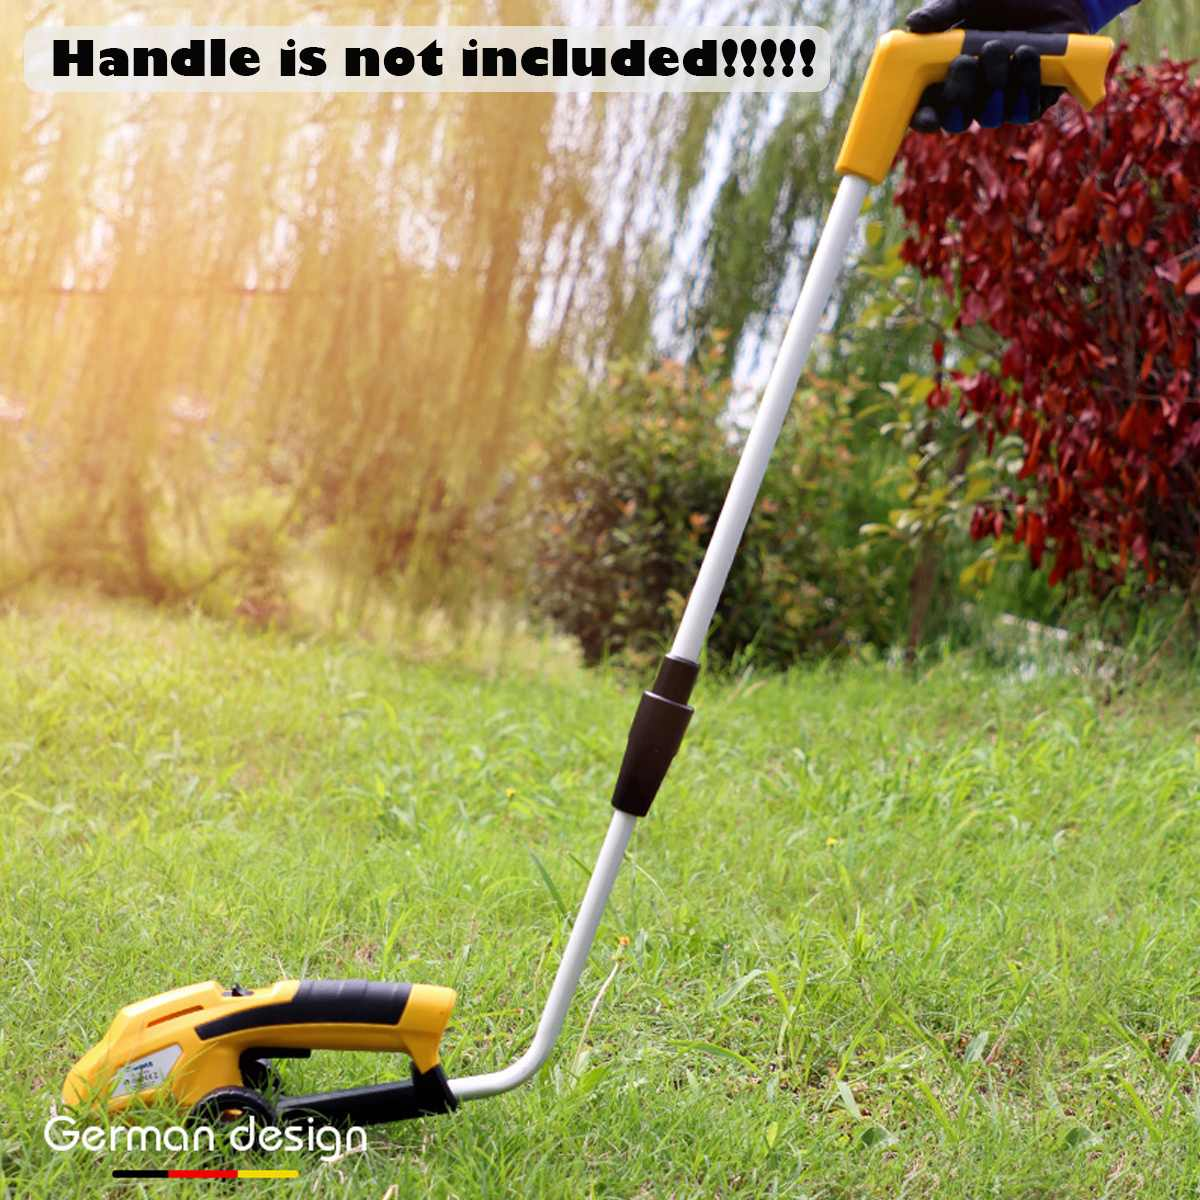 2in1 Li-Ion Battery Pruning Tool Cordless Hedge Trimmer Grass Trimmer Brush Cutter Shrub Shear Garden Tools